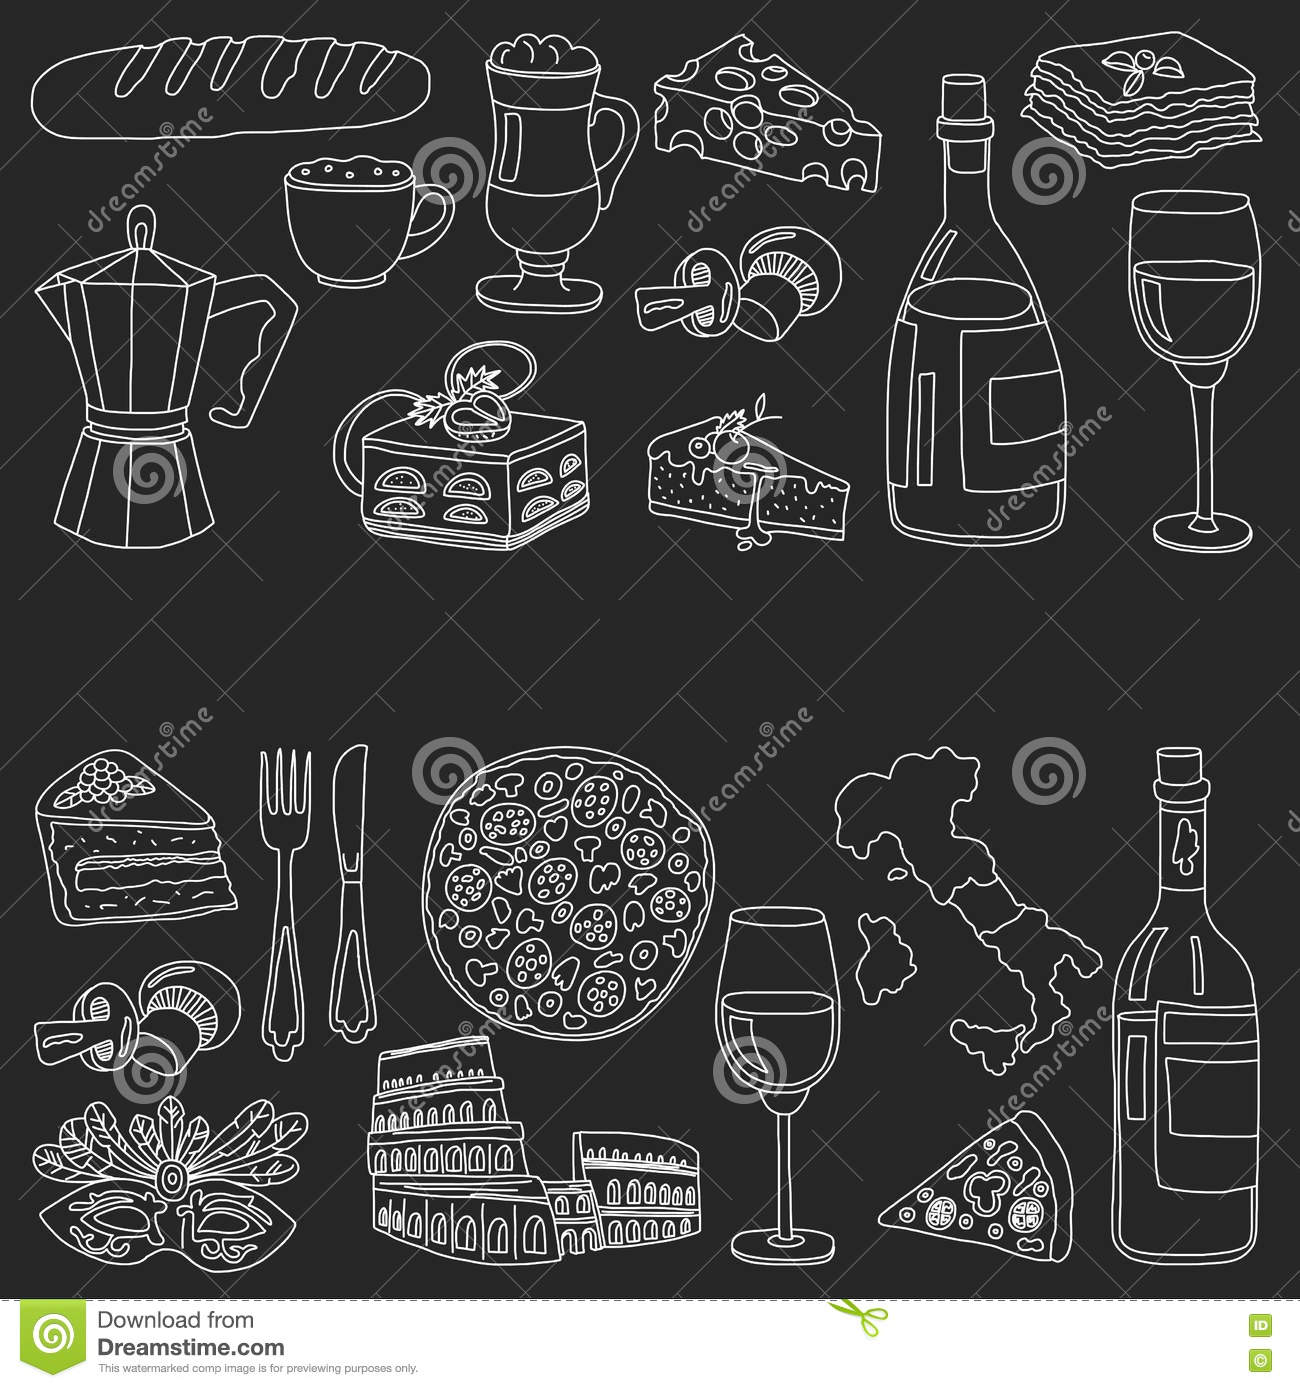 Lasagna cartoons illustrations vector stock images for Avventura journeys in italian cuisine